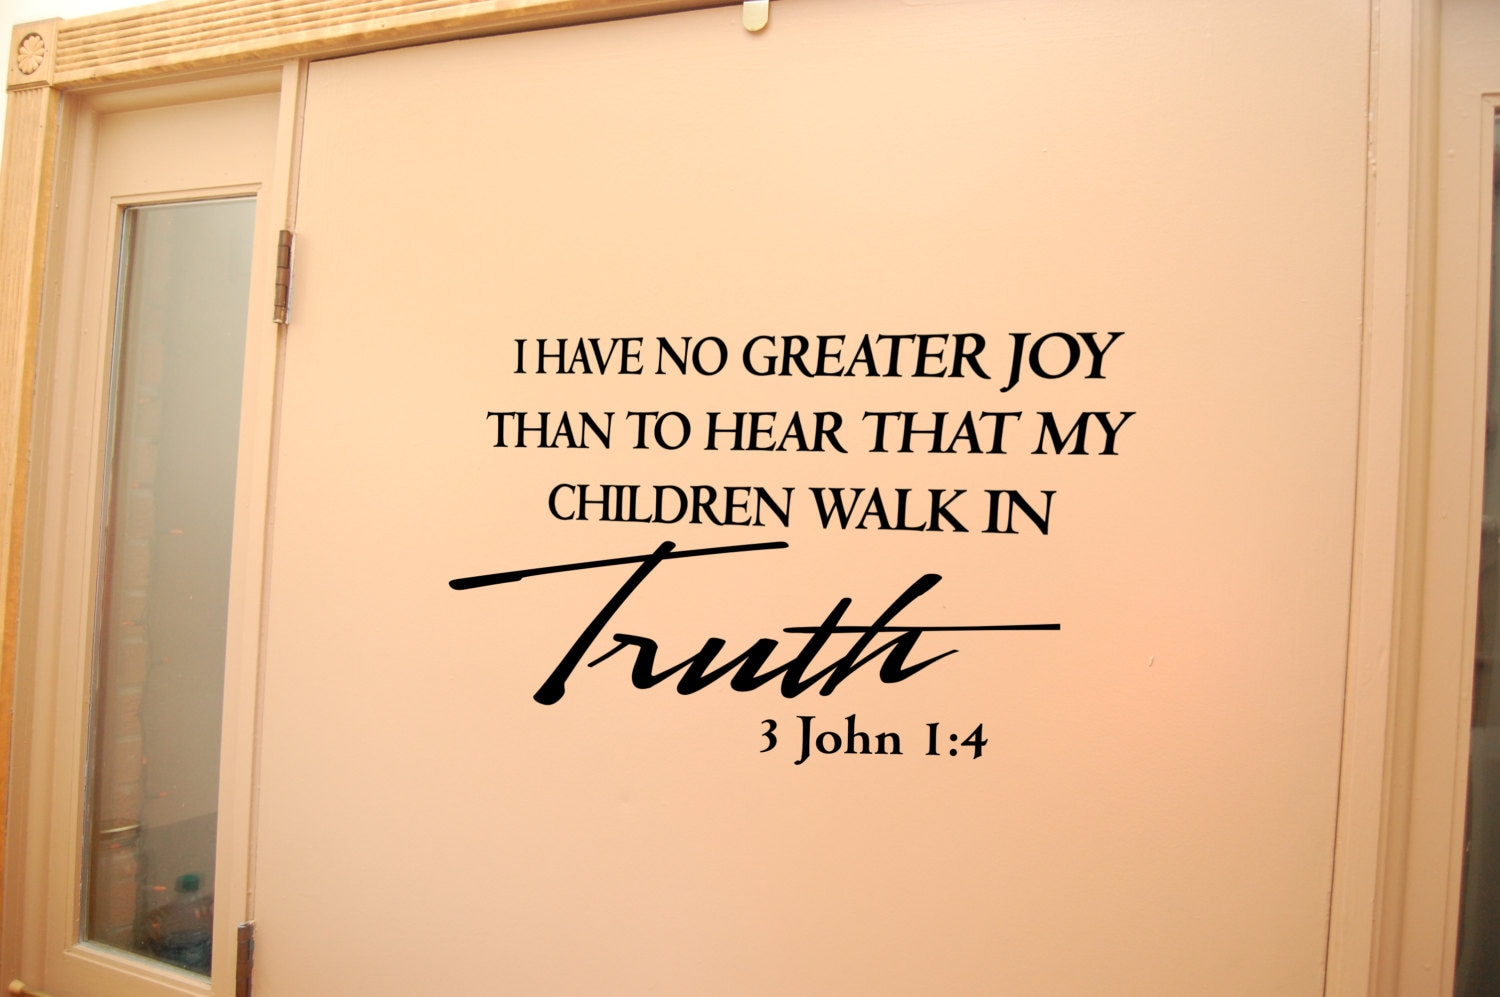 3 John 1:4 wall decal Family quote decal Laundry Room decal | Etsy